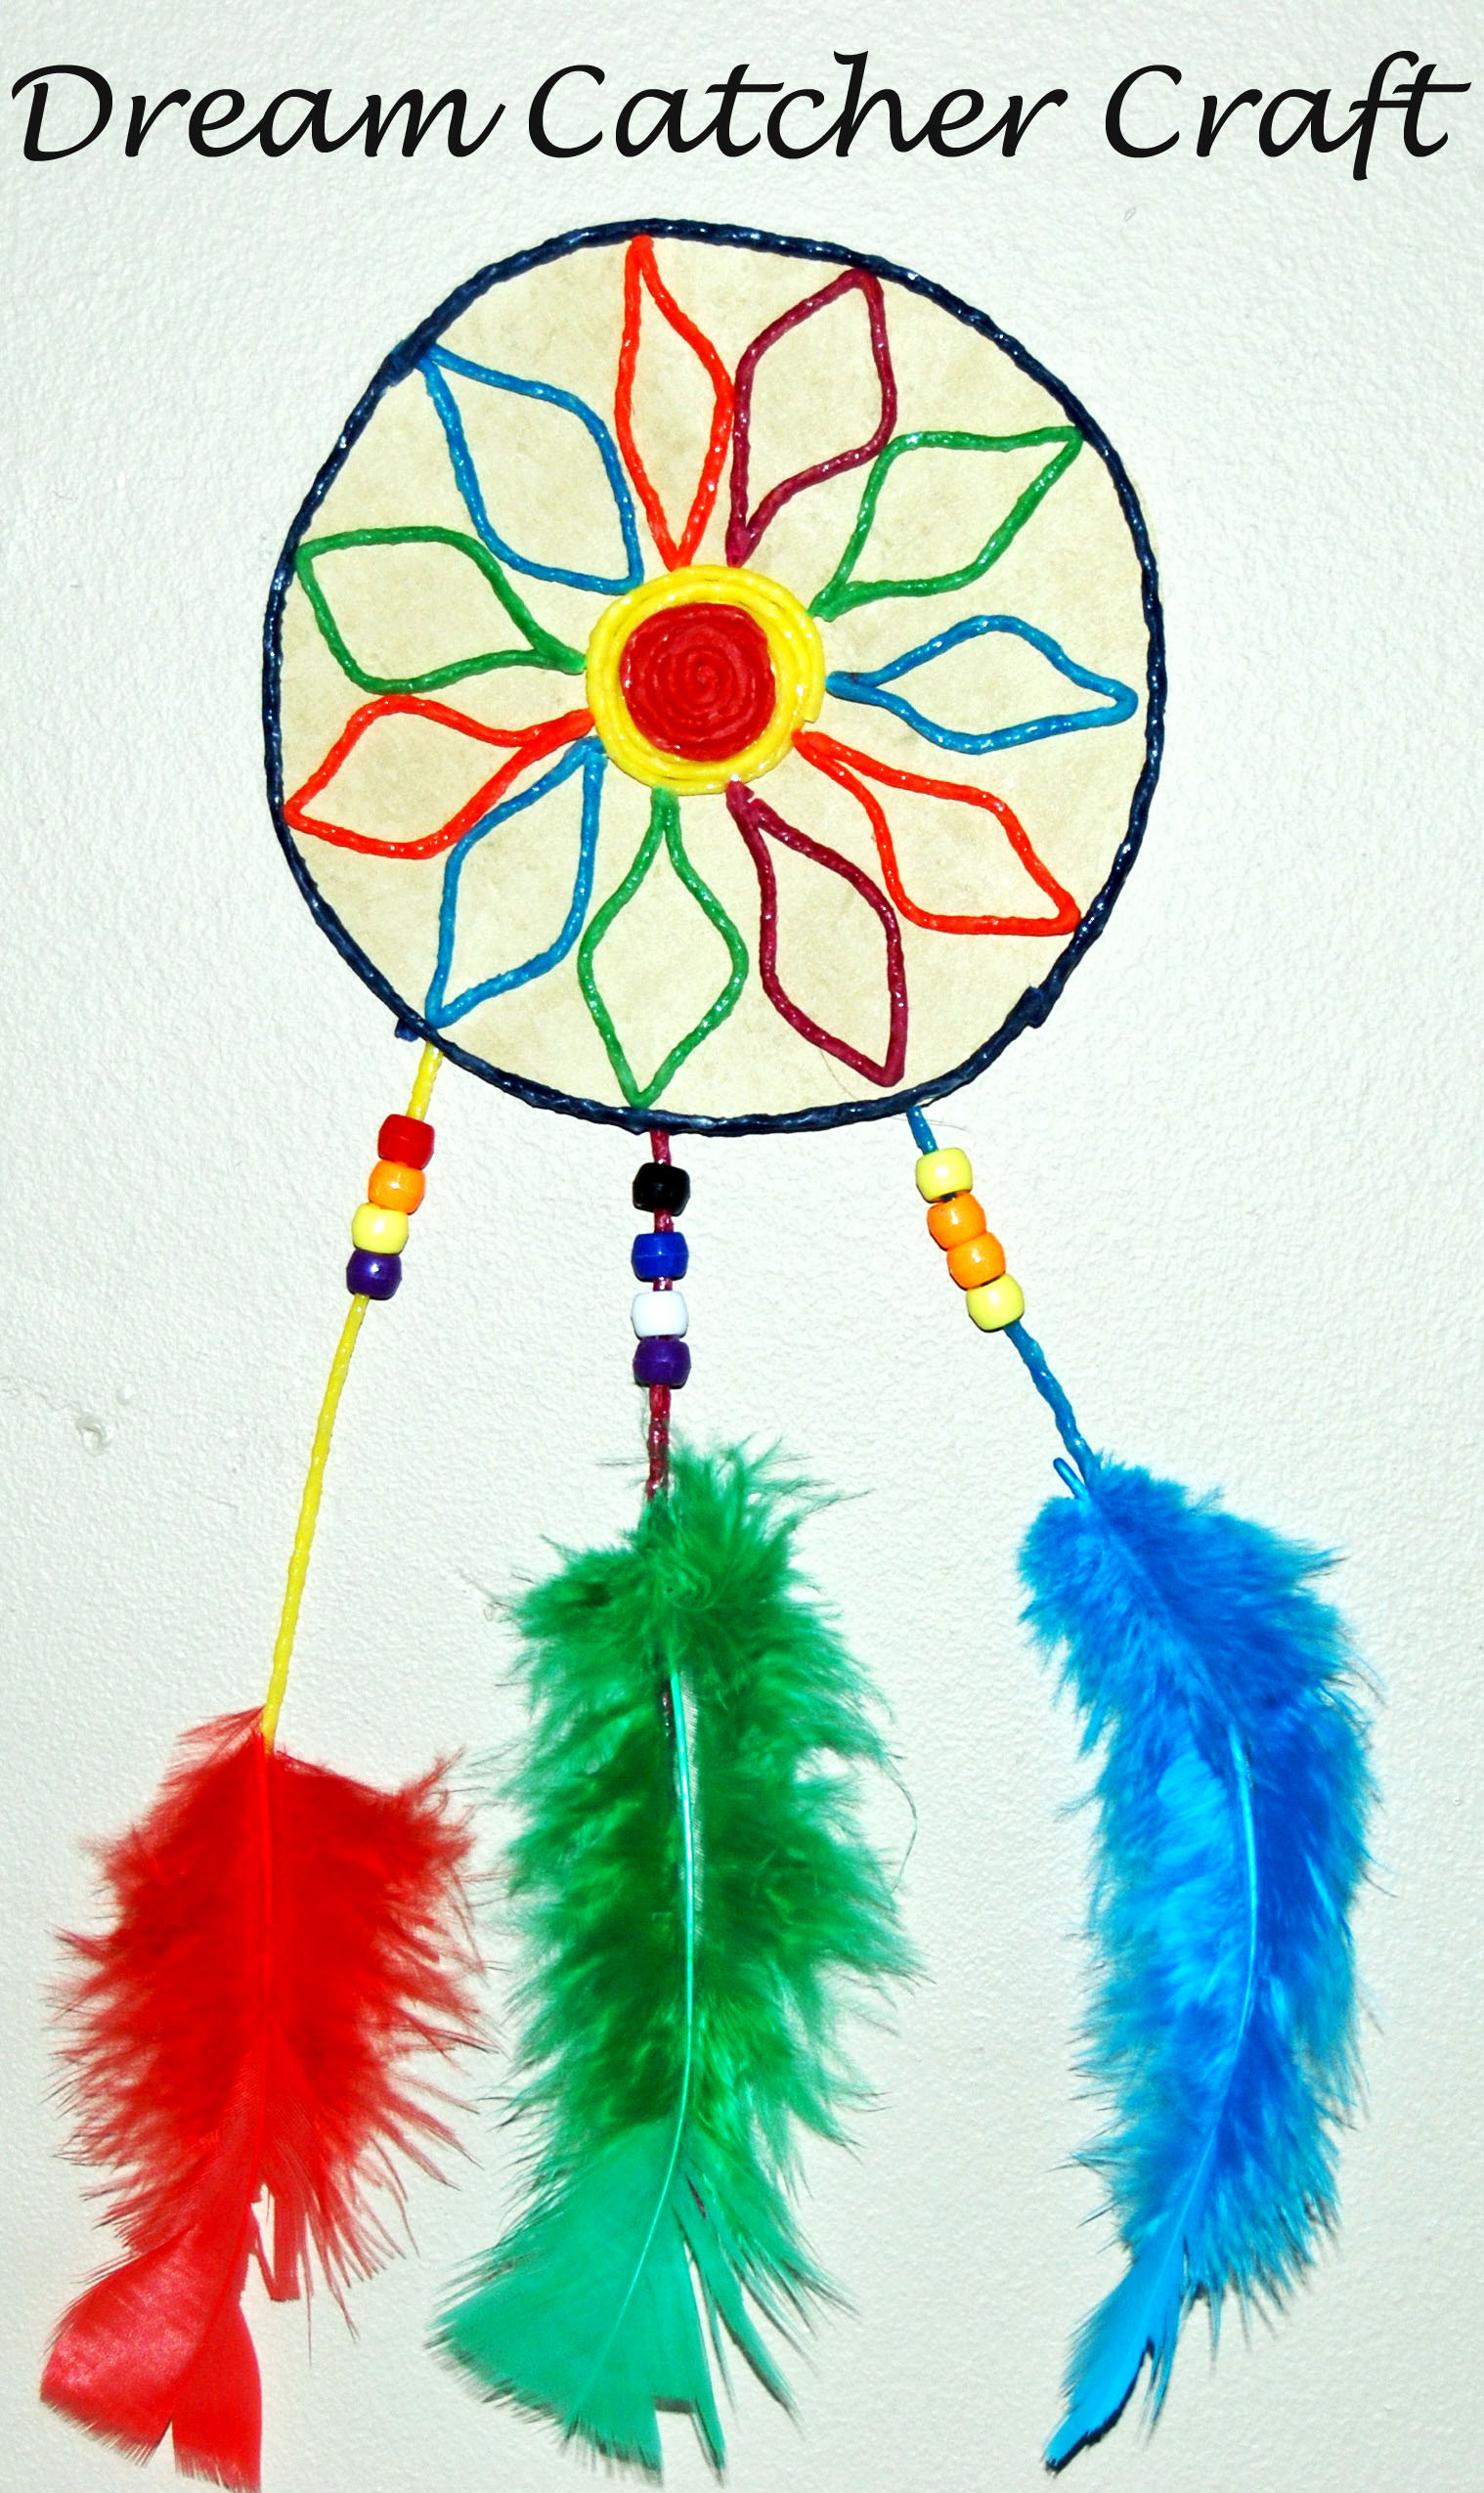 Ws Dream Catcher Craft For Kids The Preschool Toolbox Blog